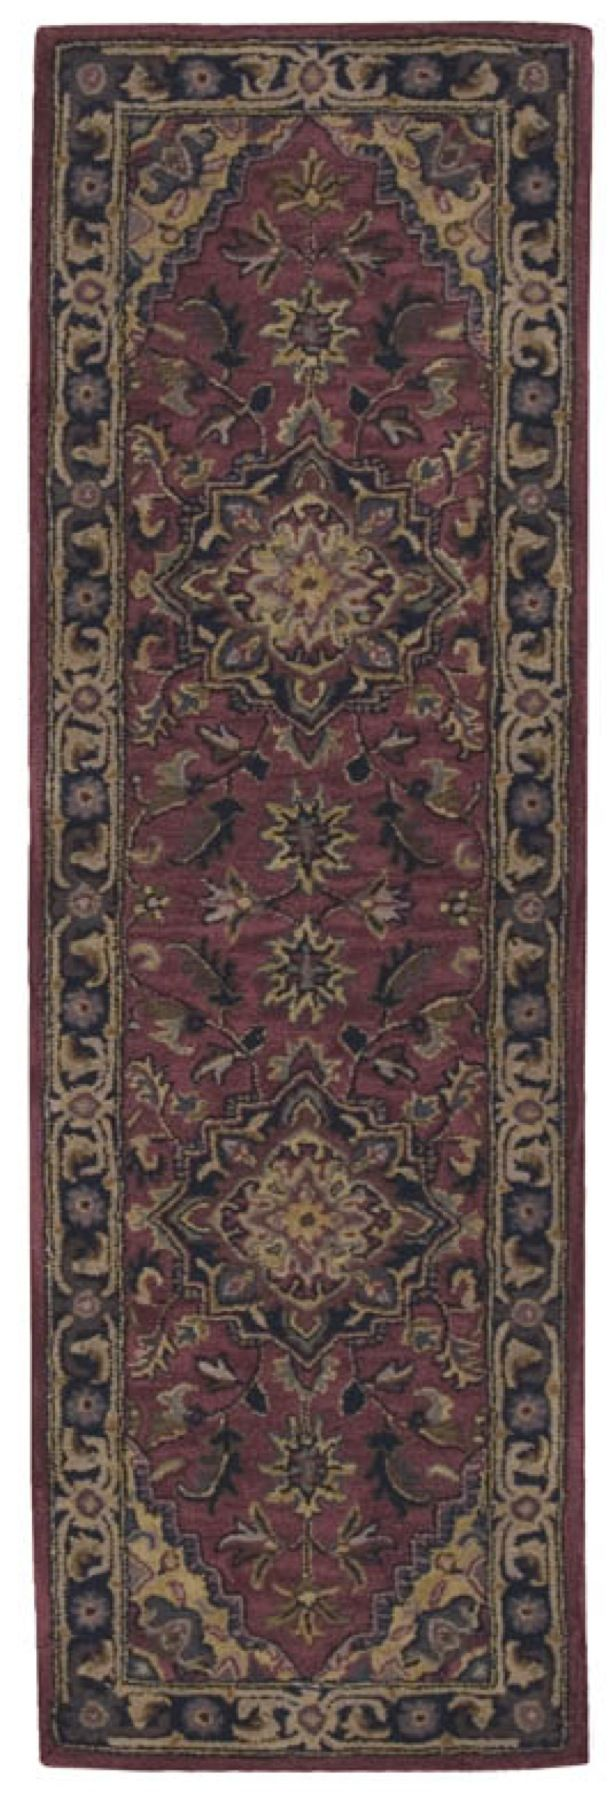 nourison india house european area rug collection